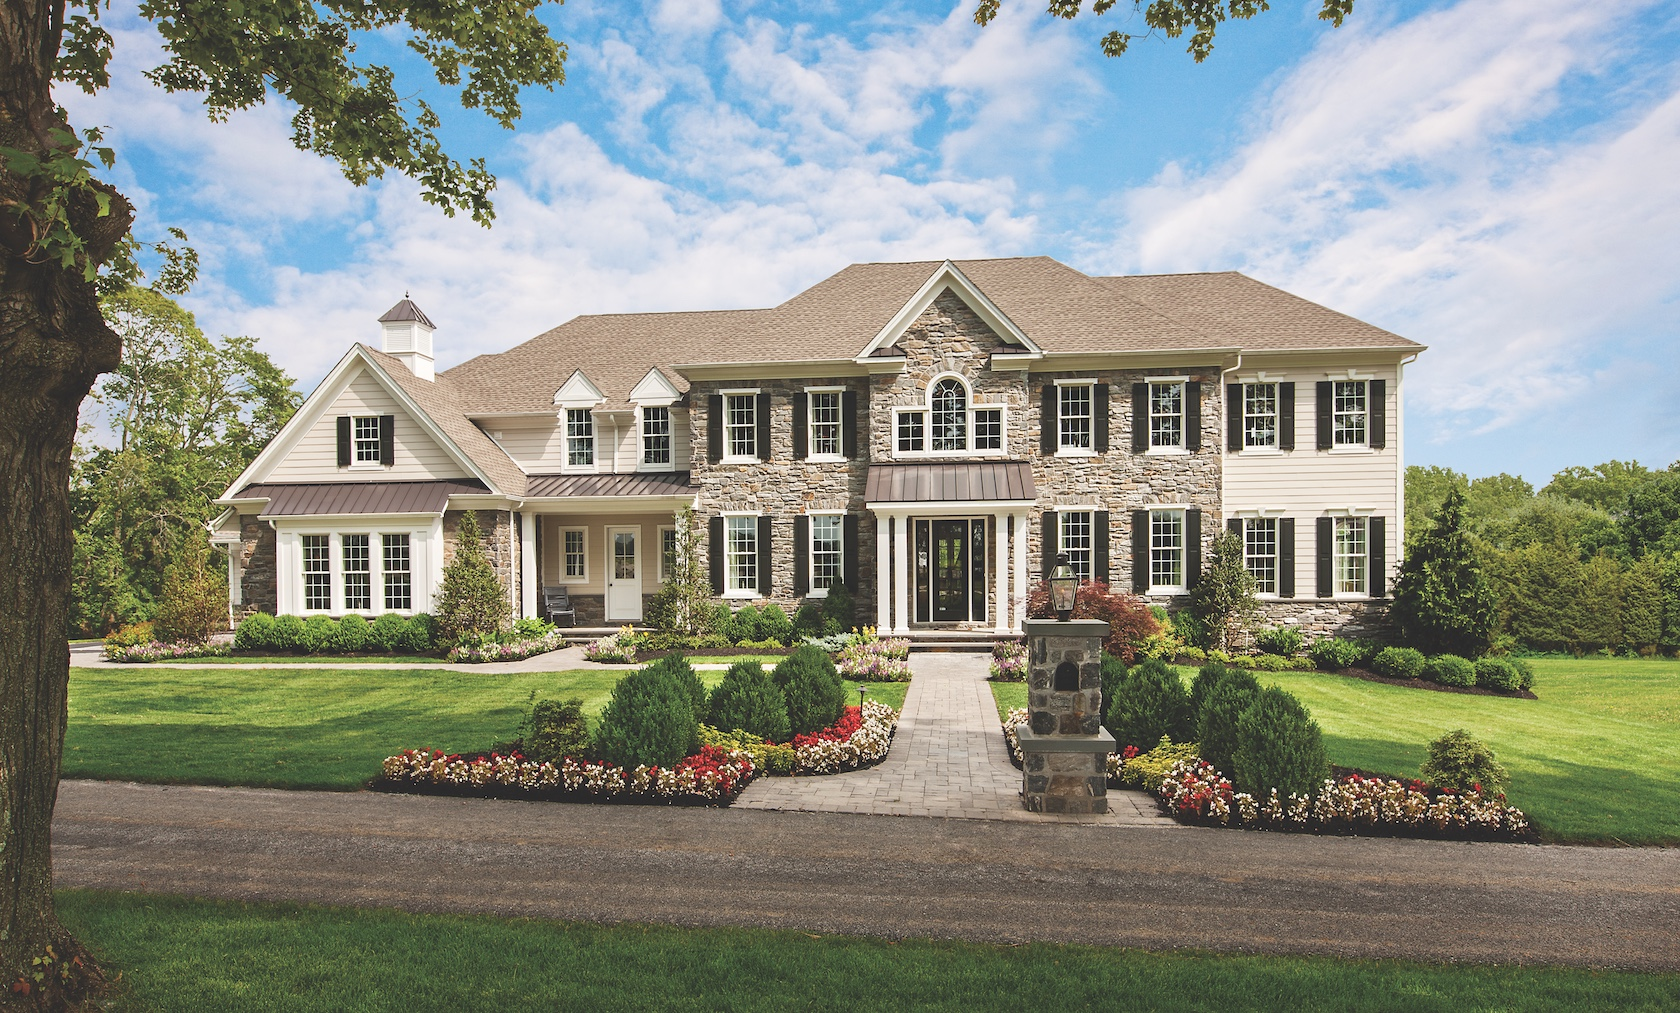 5 Tips For Updating Curb Appeal When Selling Your Home Build Beautiful